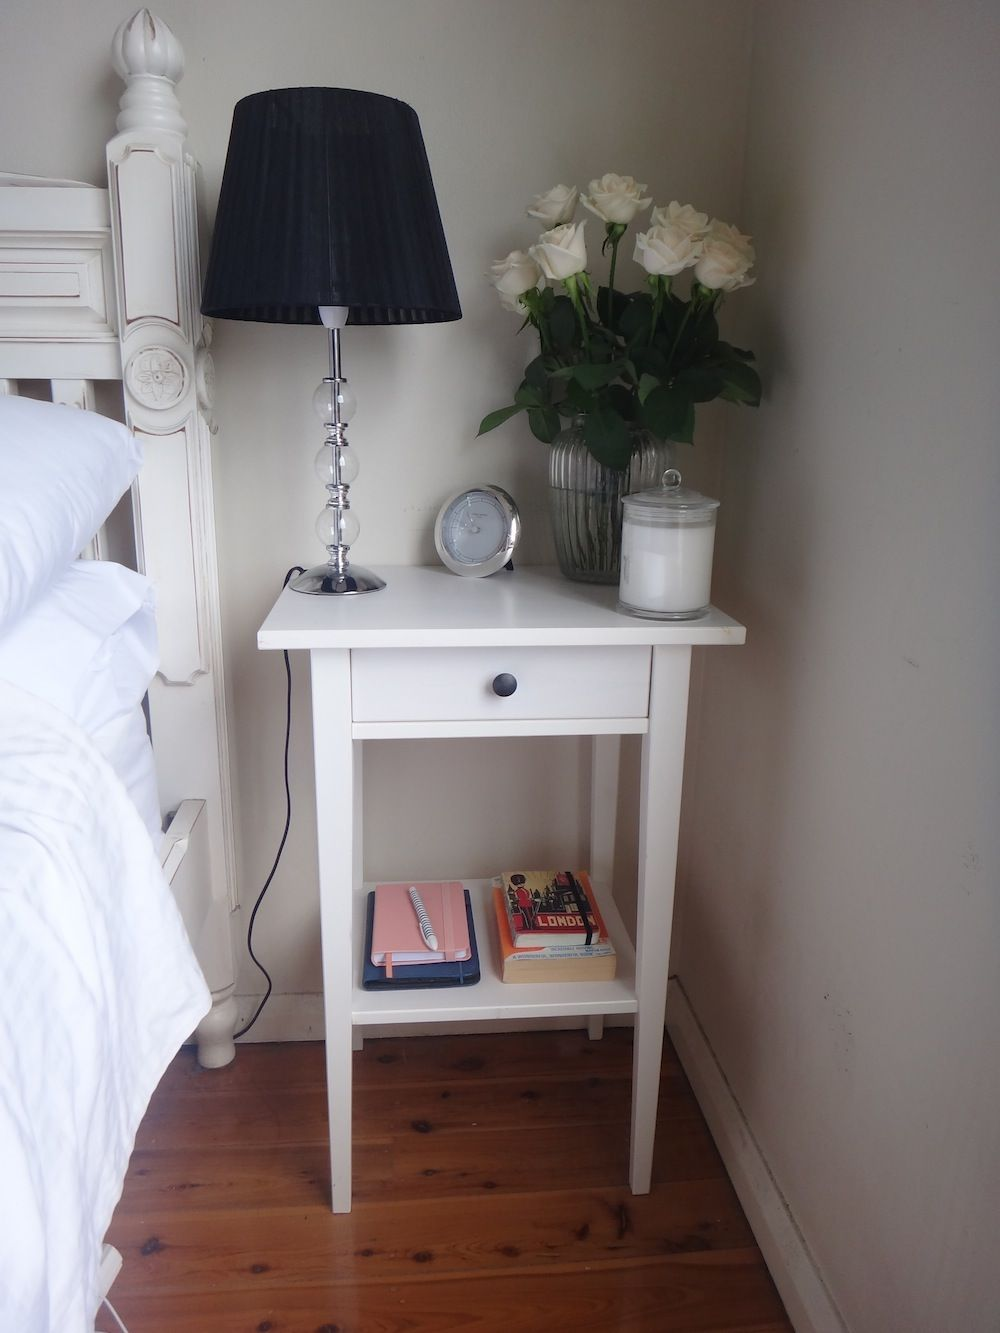 Ikea Hemnes White Bedside Table Getting 2 Of These And Will Put A Small Cane Basket On The Botto Side Tables Bedroom Bedroom Night Stands White Bedside Table